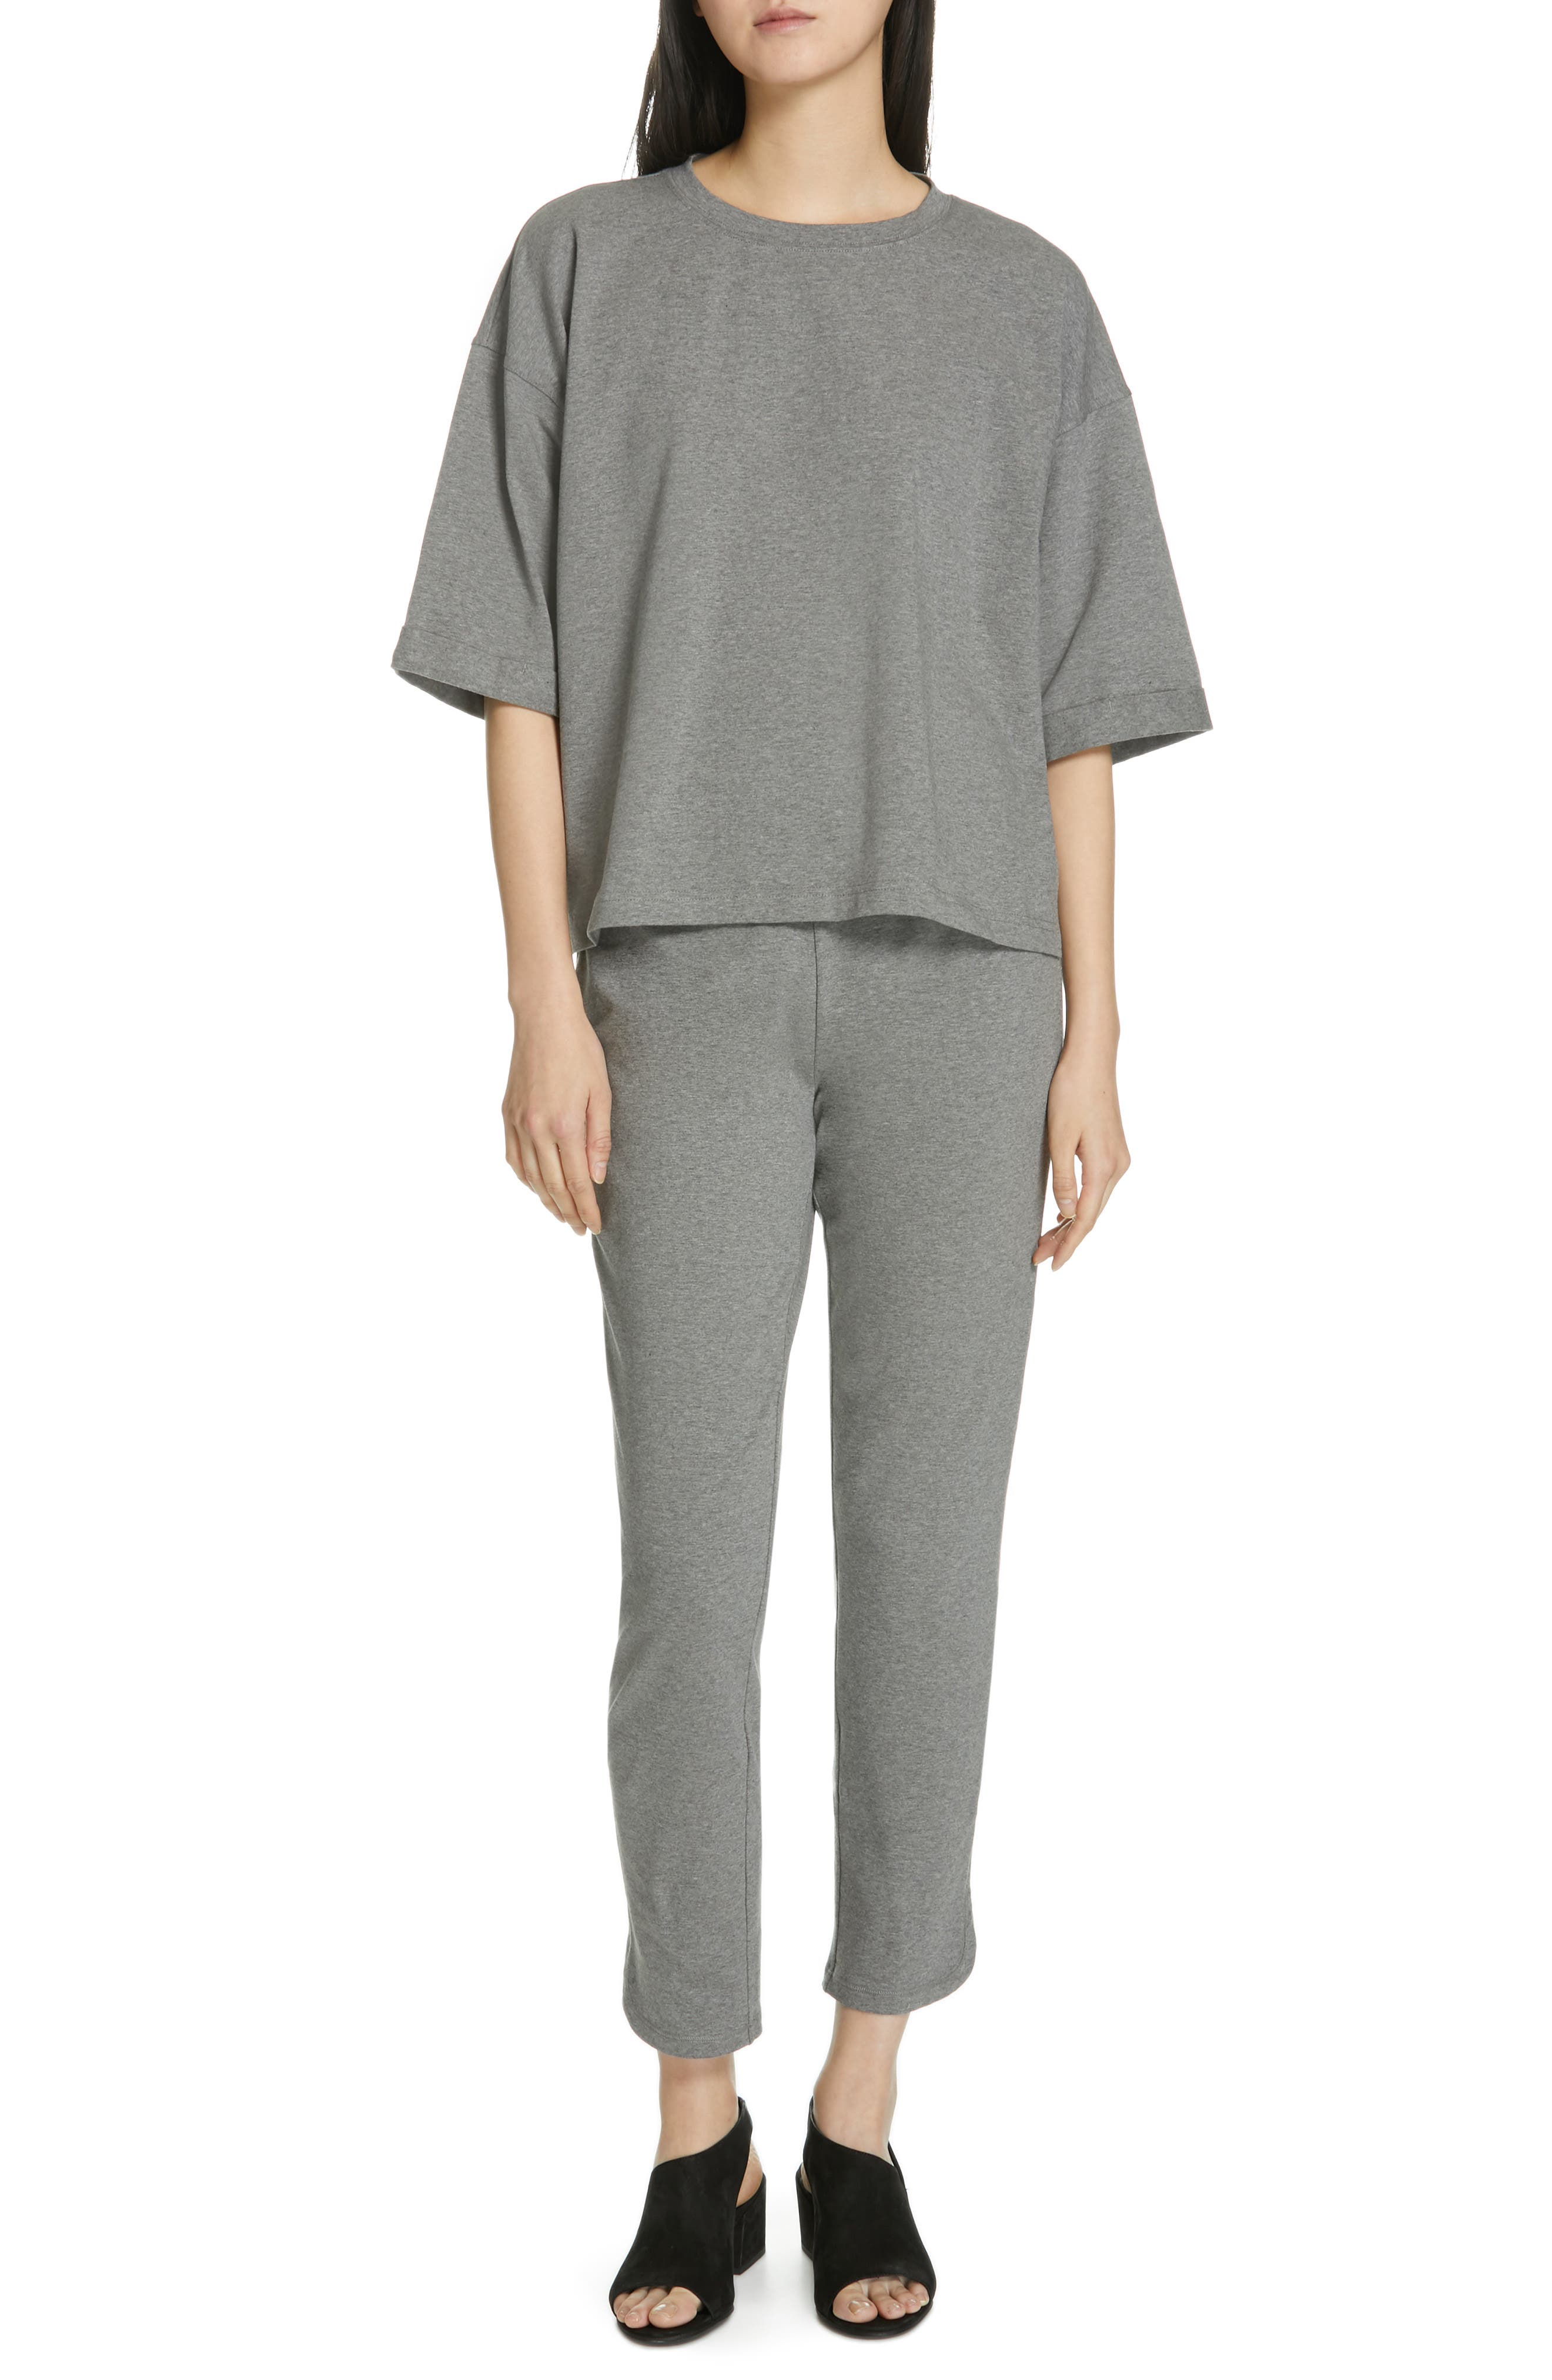 EILEEN FISHER, Stretch Organic Cotton Top, Alternate thumbnail 7, color, MOON